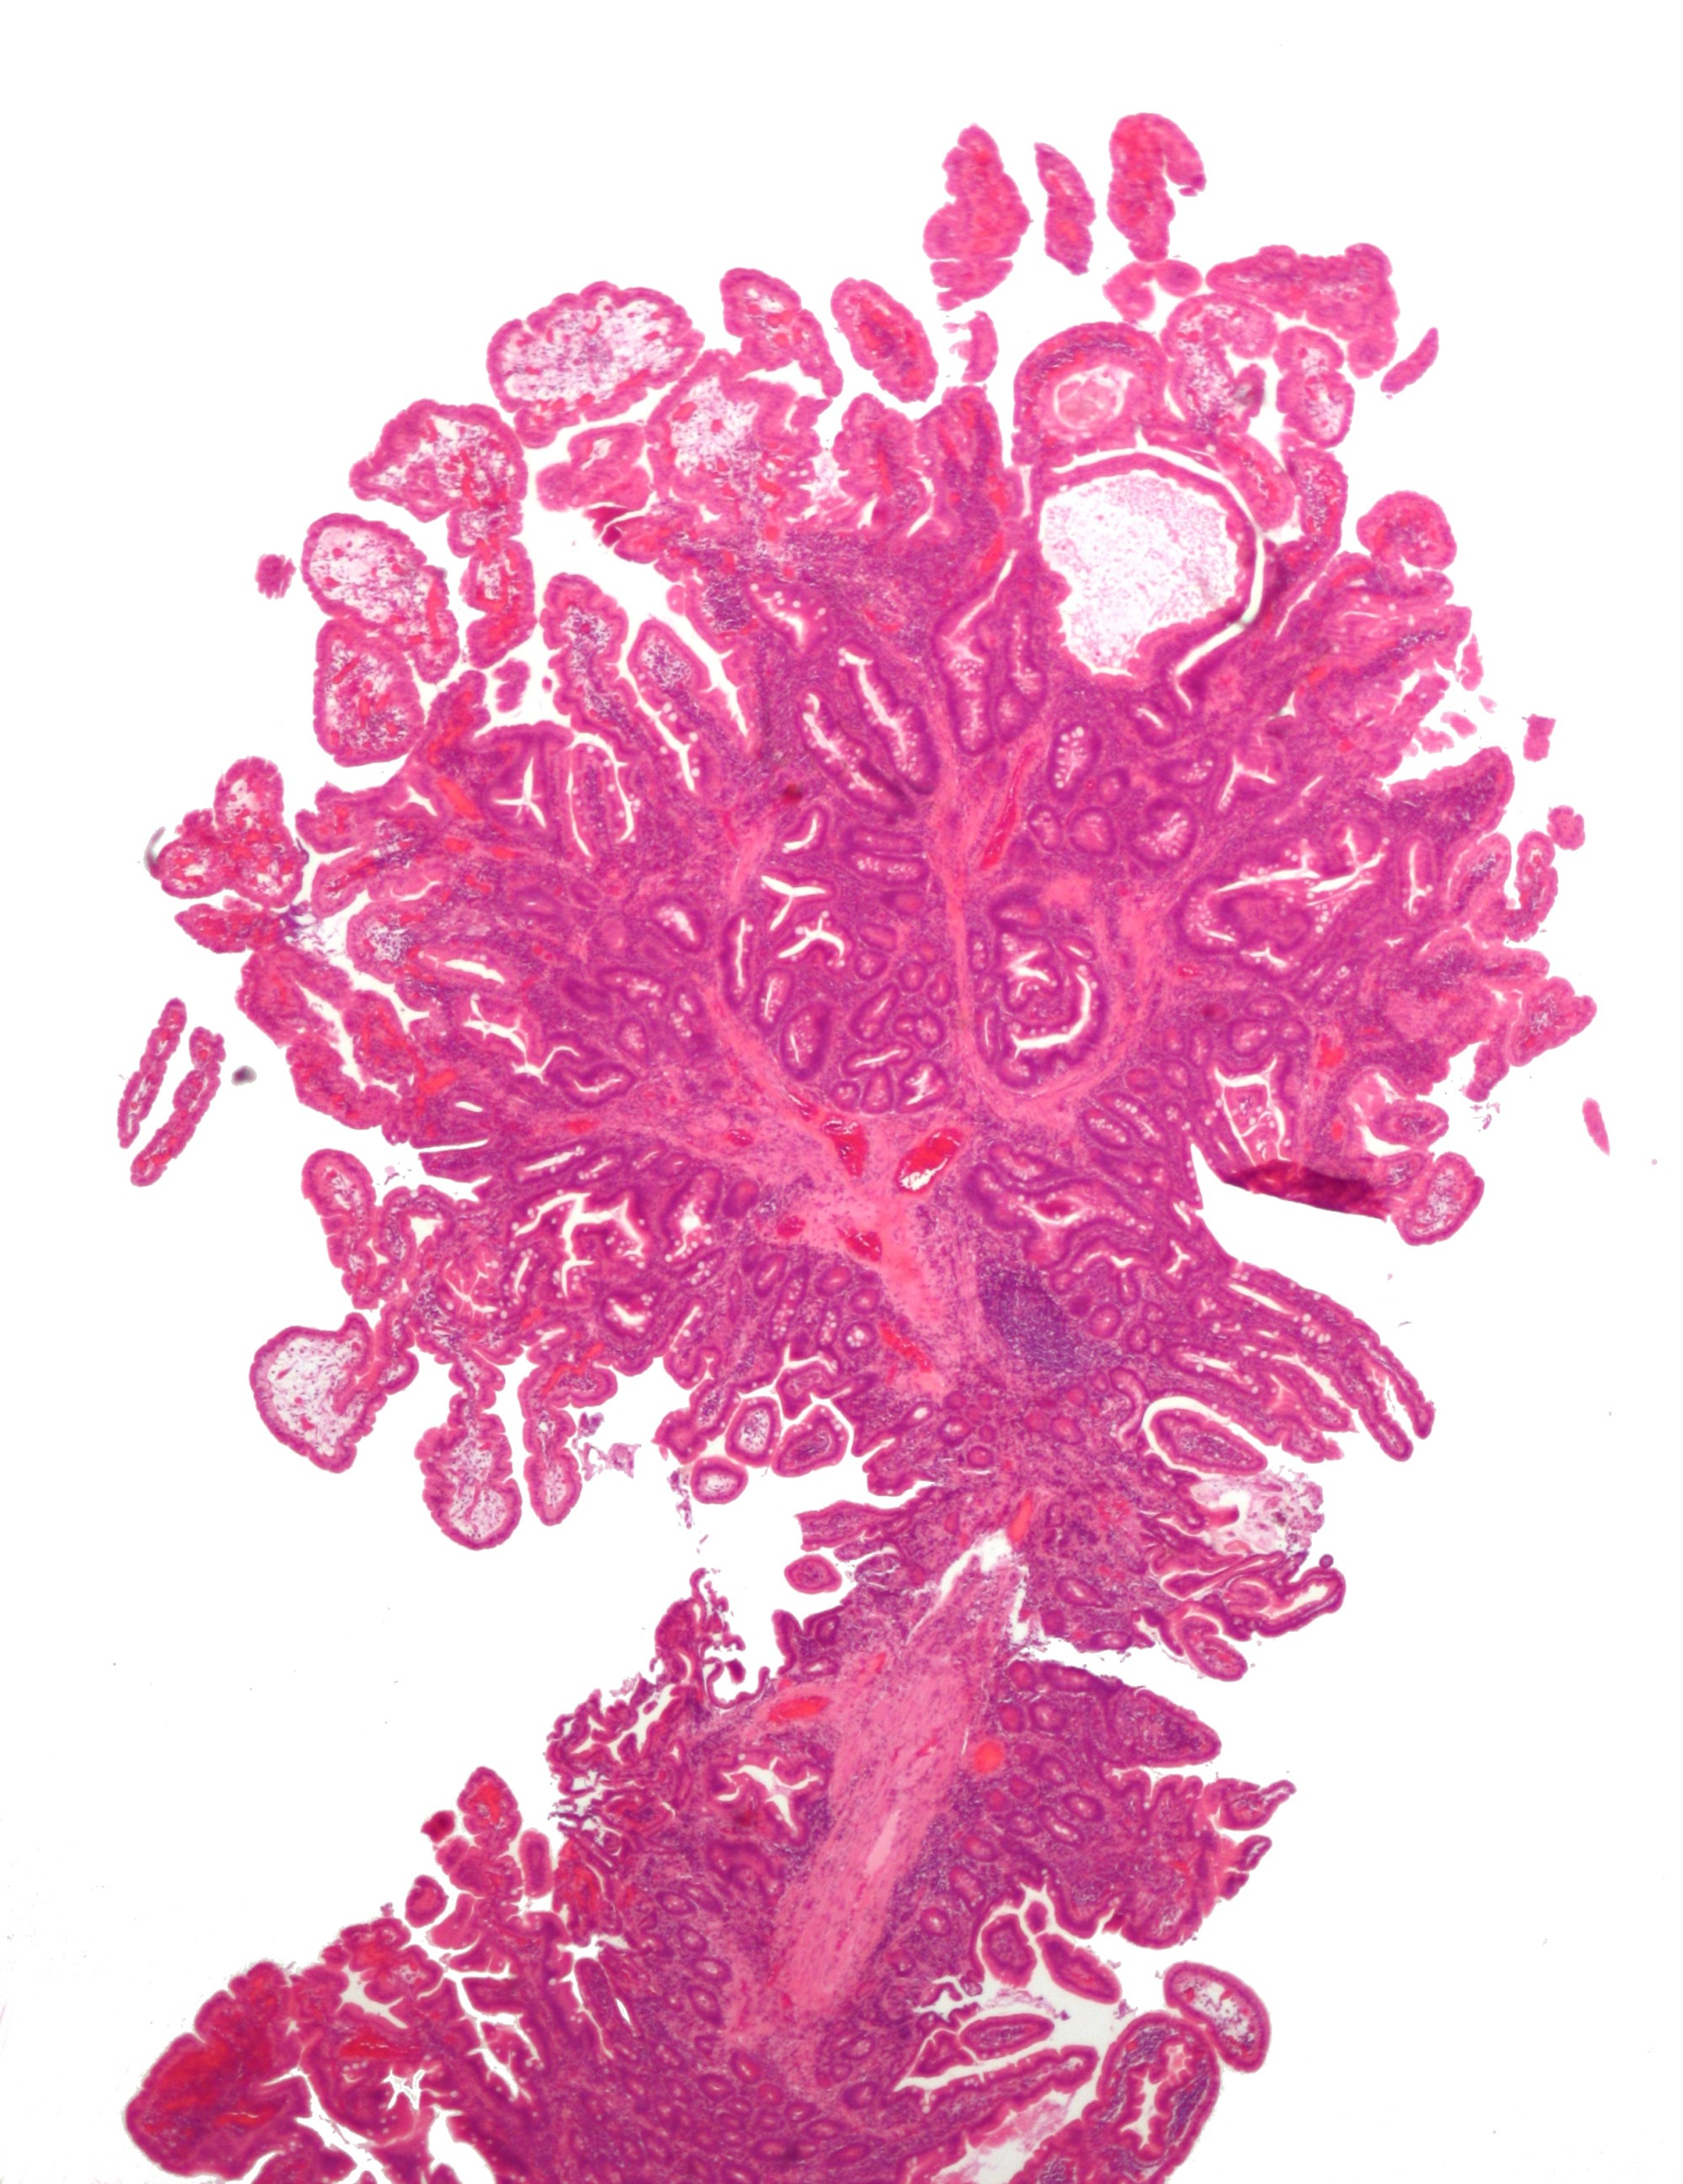 hight resolution of micrograph of a peutz jeghers colonic polyp a type of hamartomatous polyp h e stain